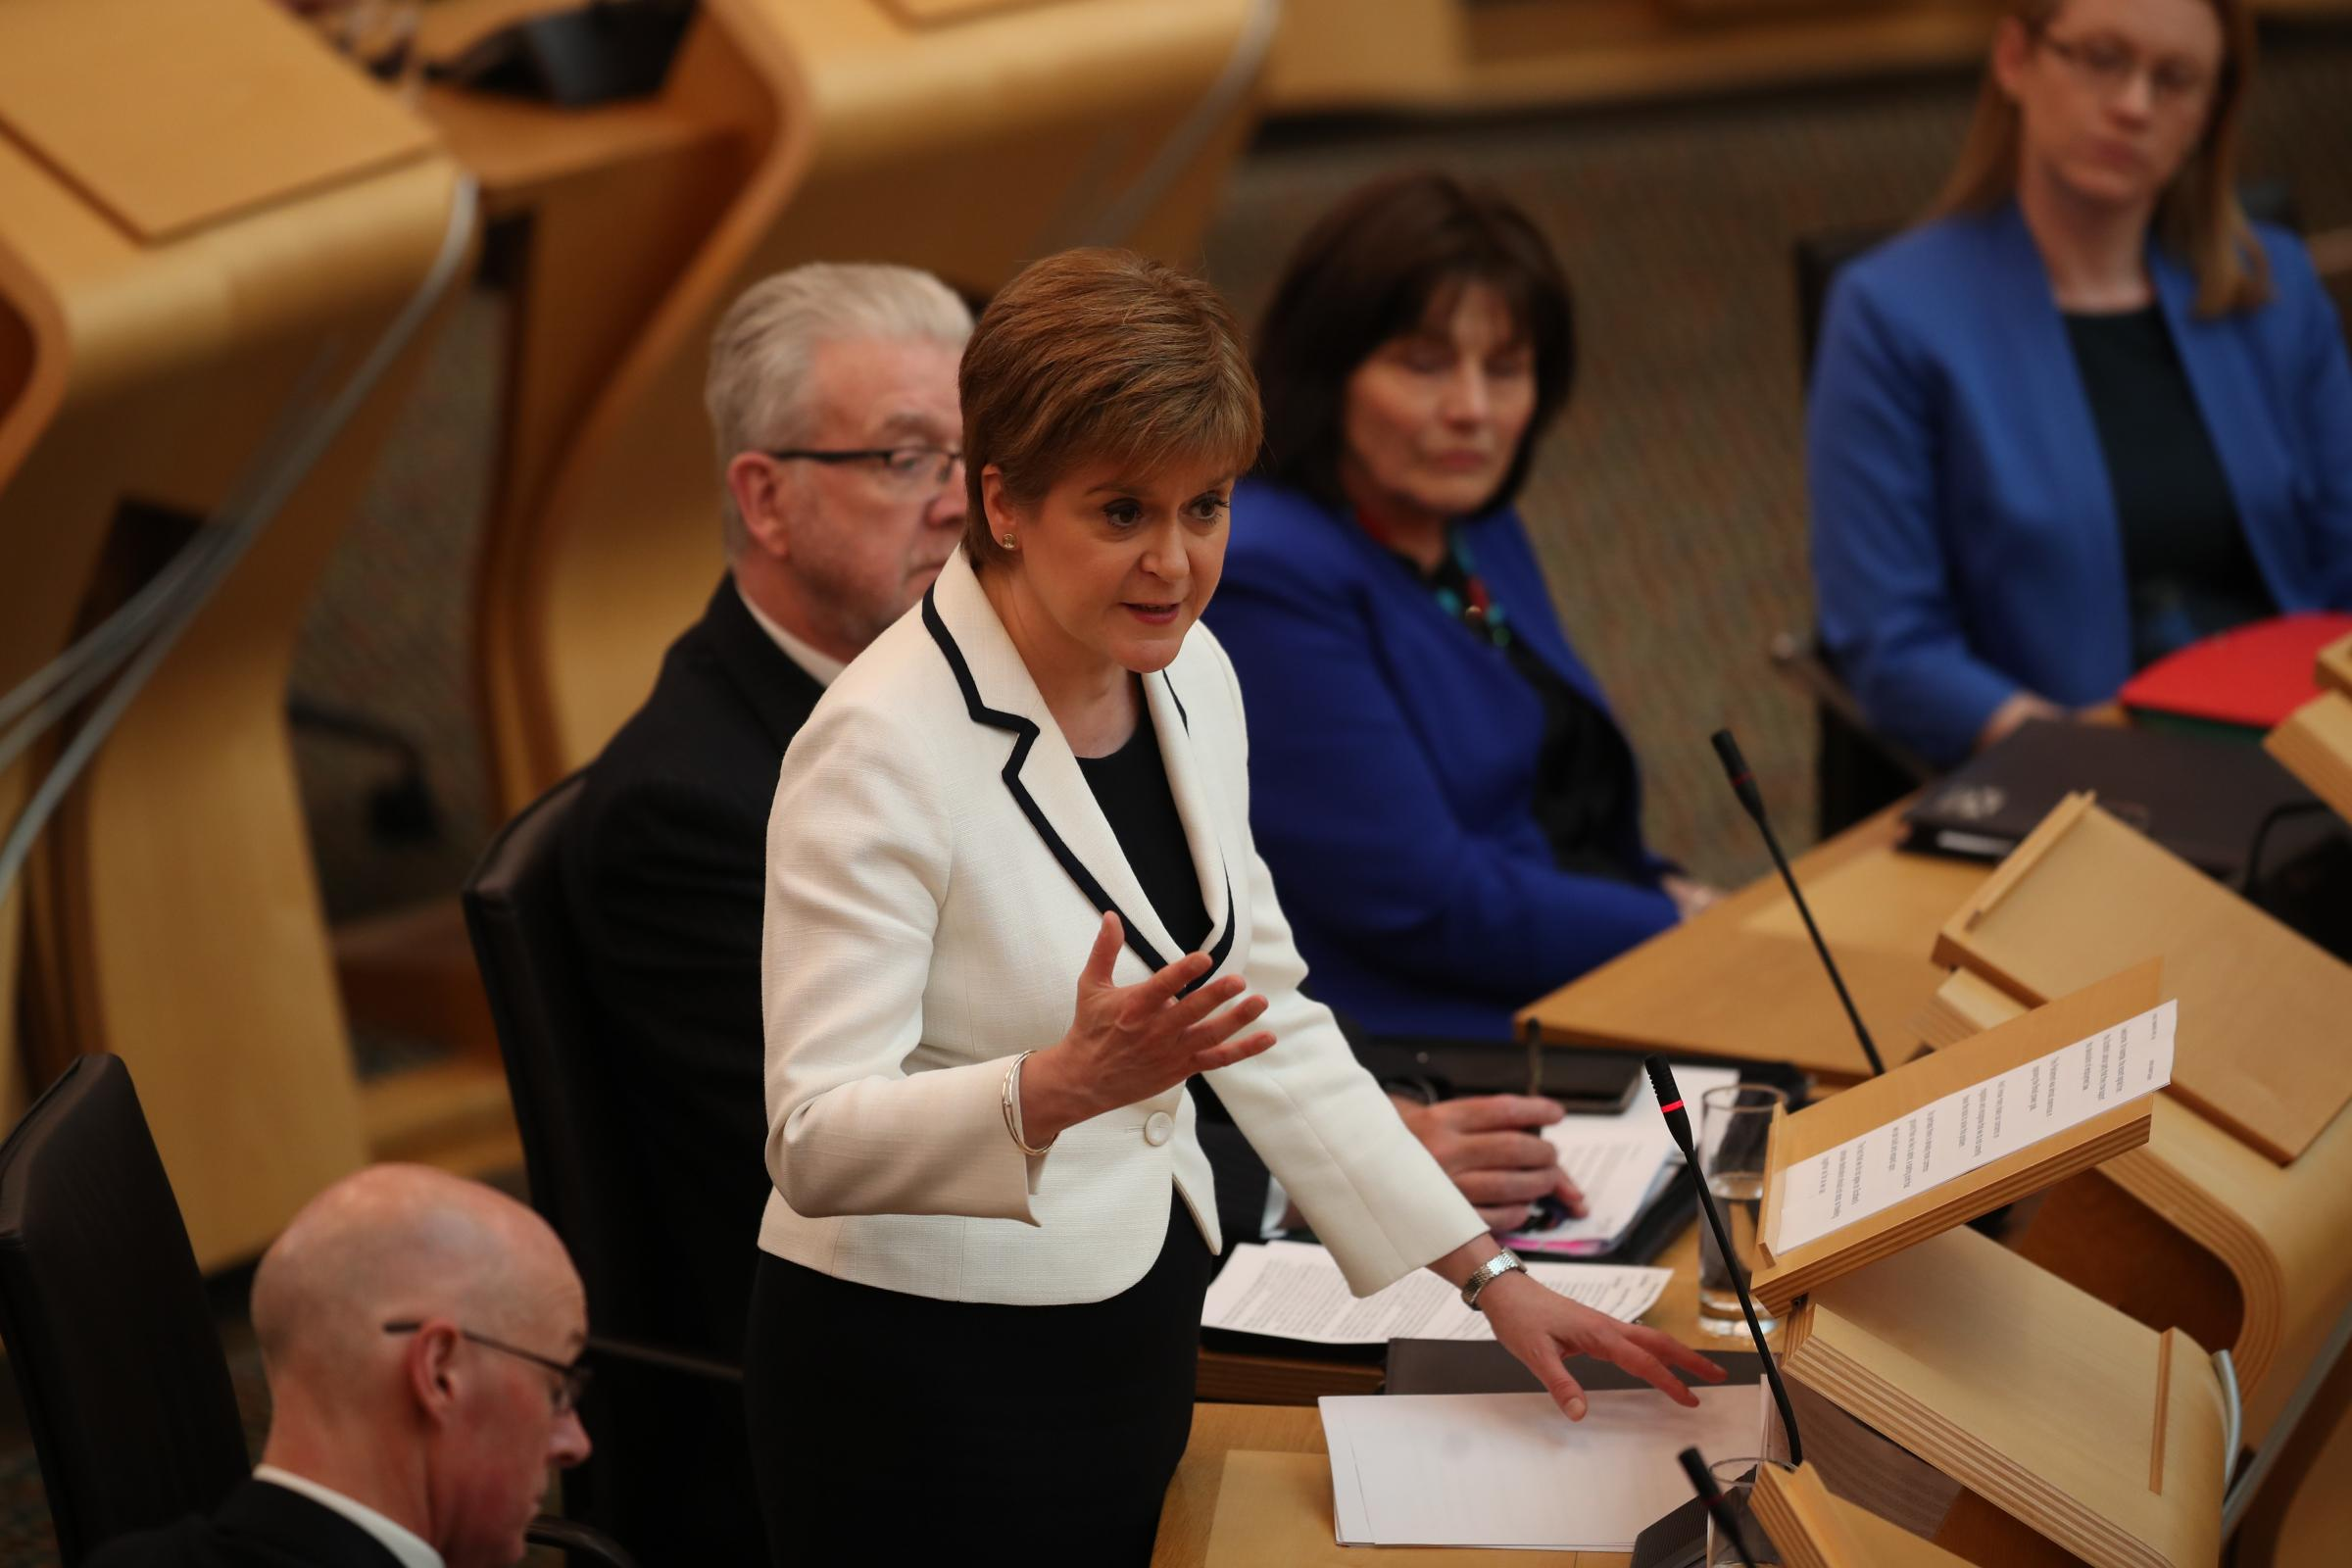 Indyref2: How did the European press respond to Sturgeon's announcement?